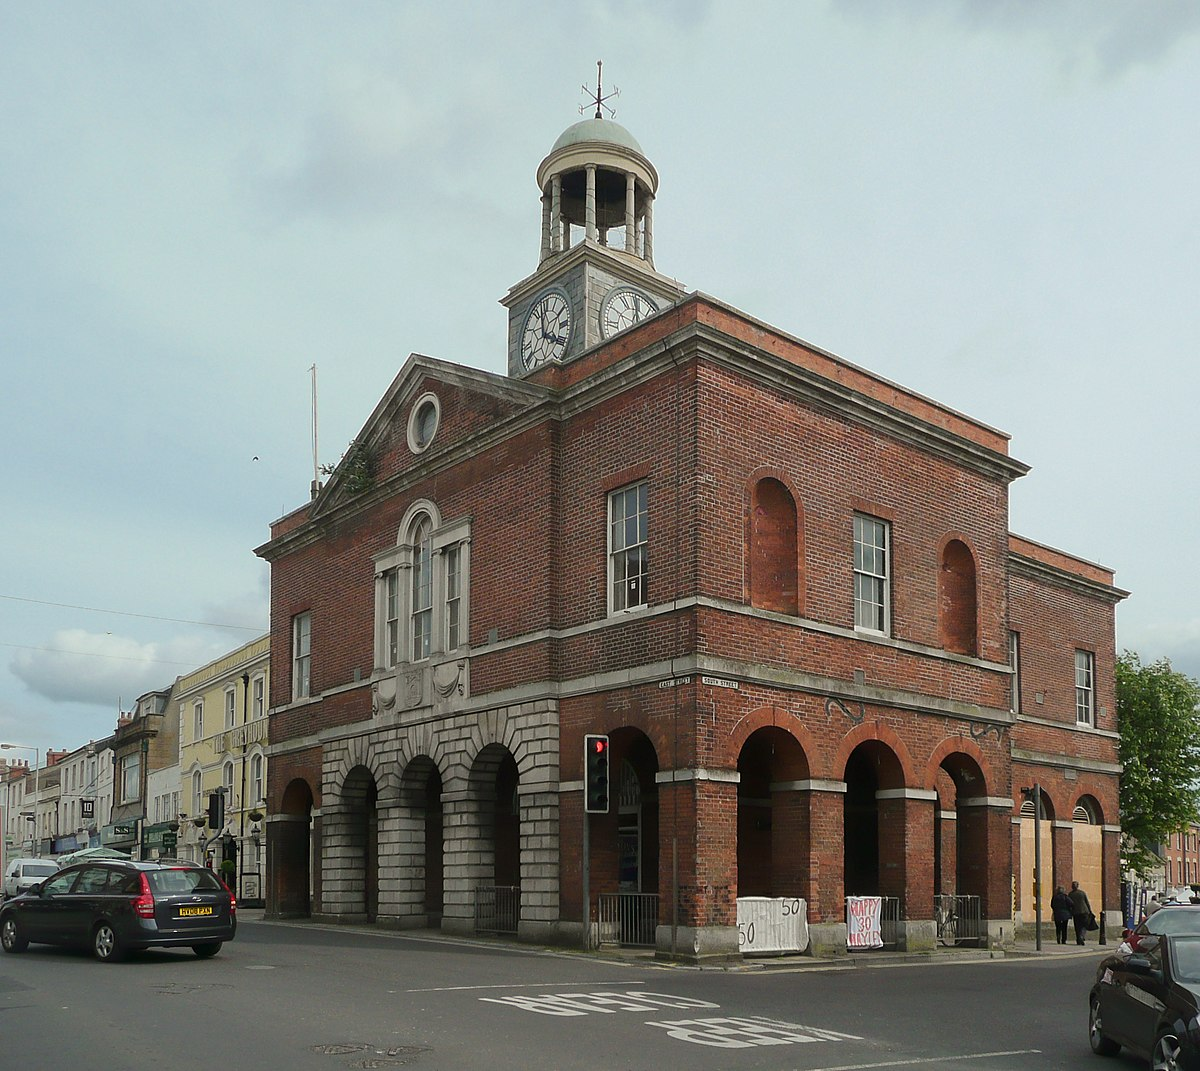 Bridport Town Hall